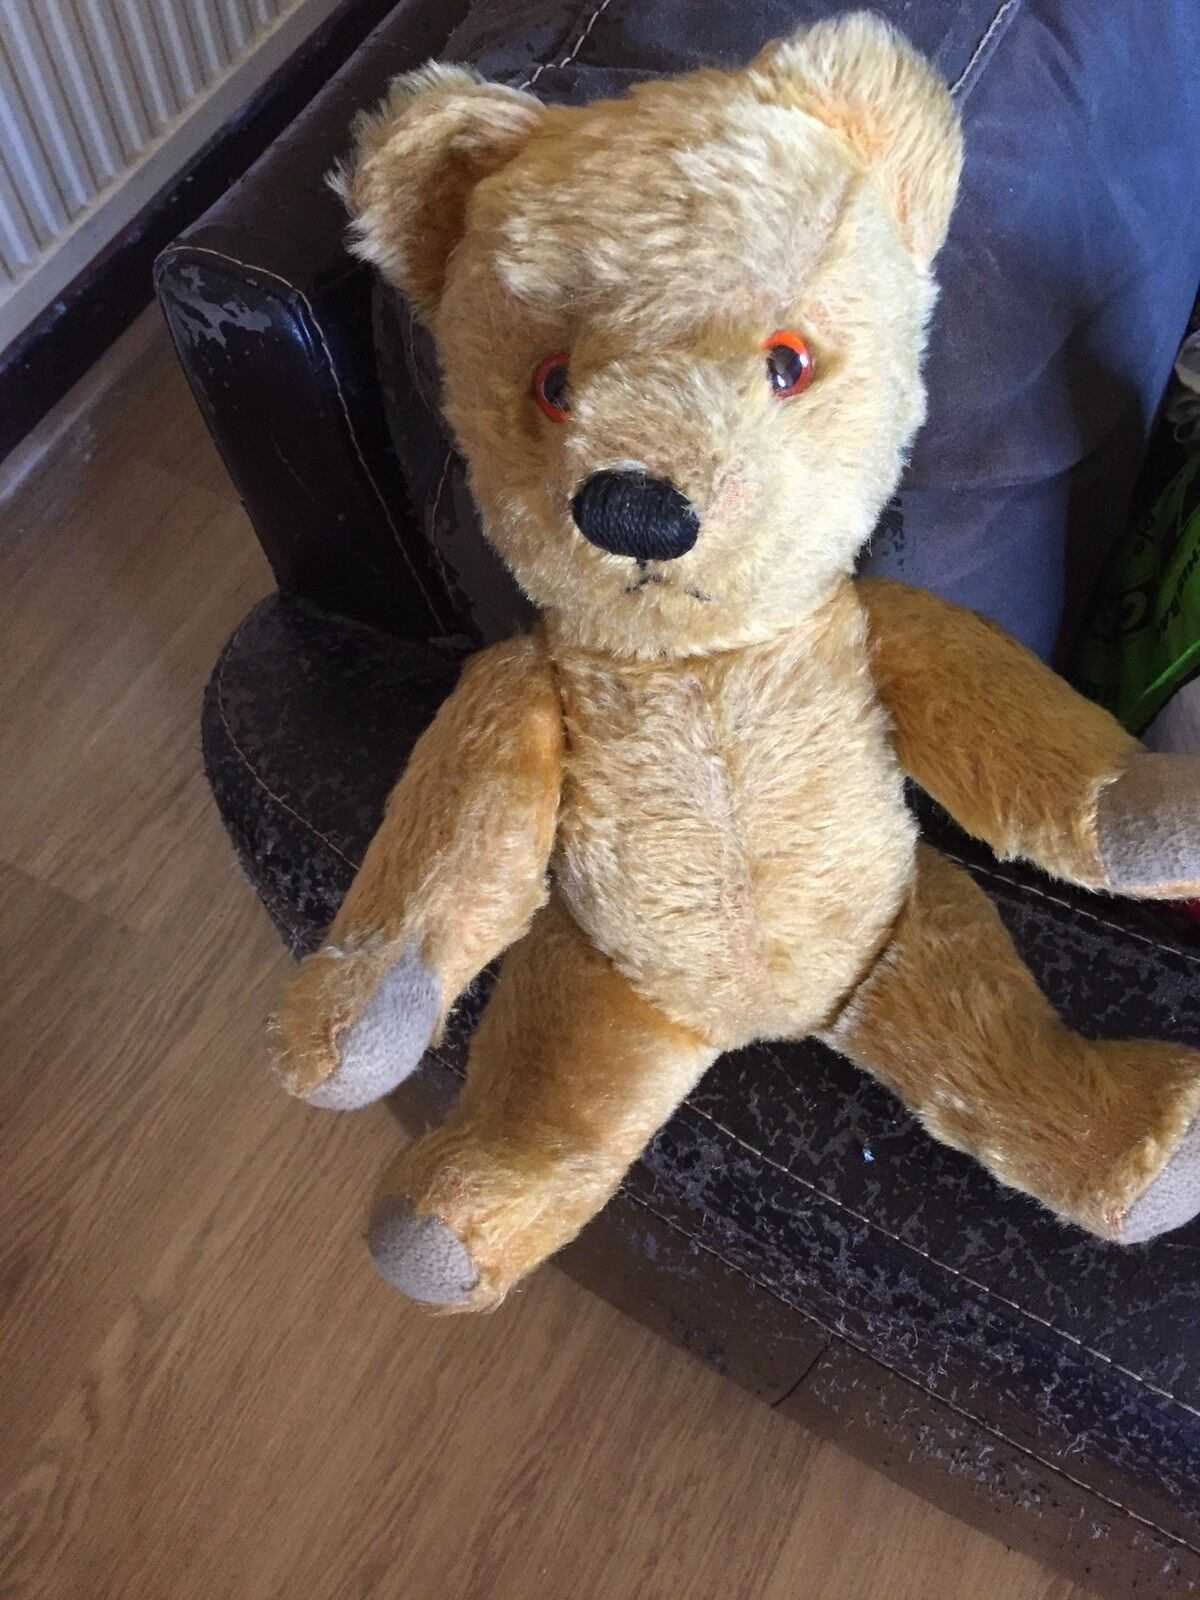 Vintage Golden moHairot Jointed Teddy Approx 16 16 16 Inch dd1e77